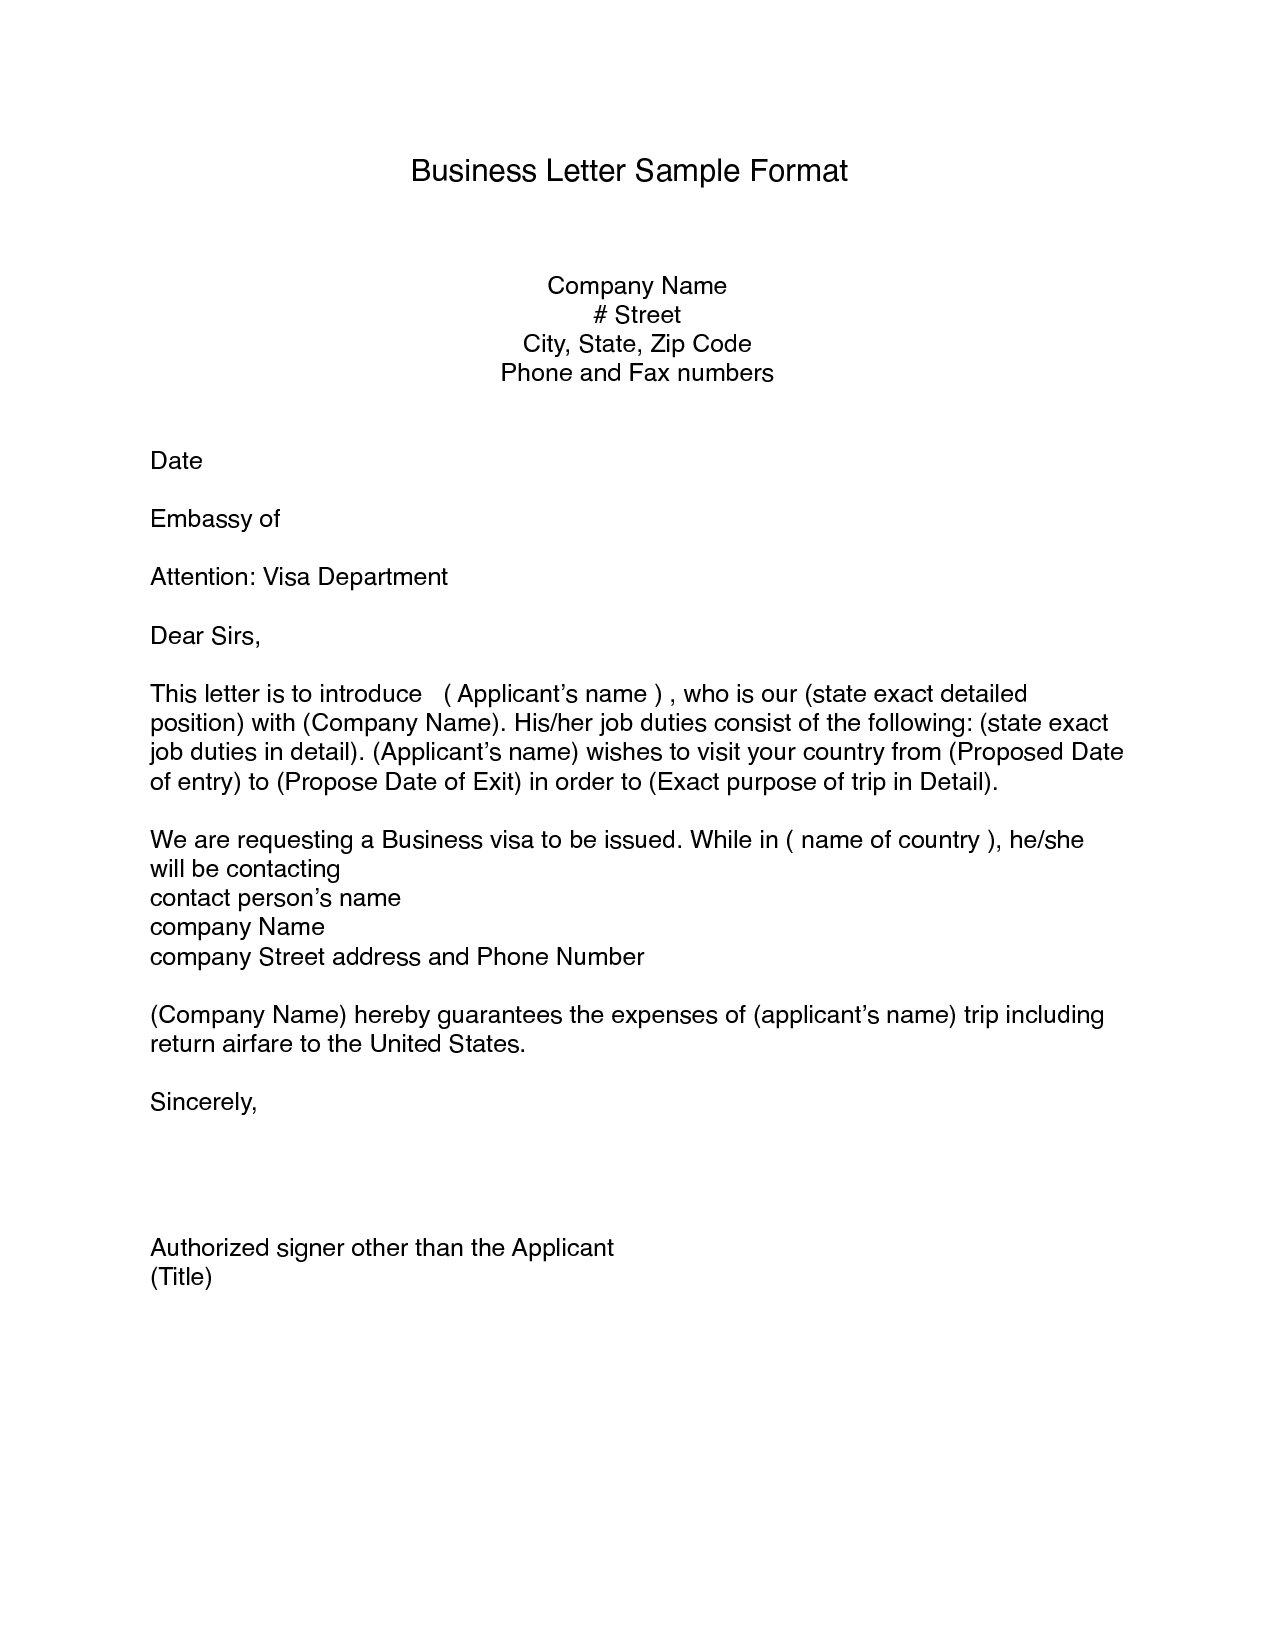 Sample Professional Business Letters